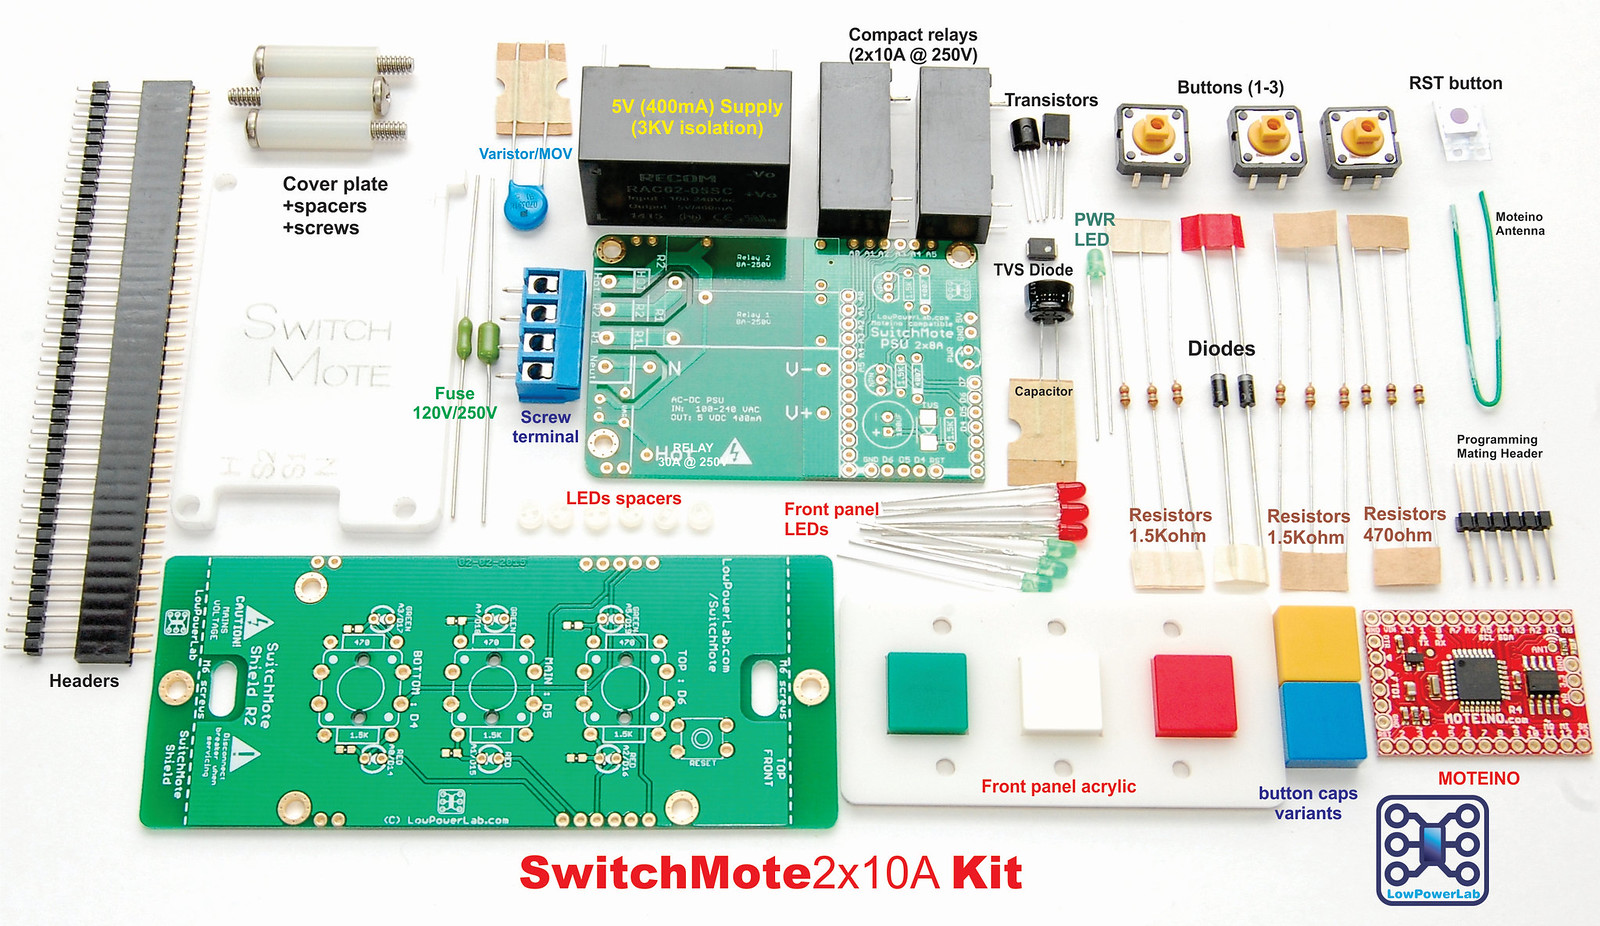 Switchmote Lowpowerlab Powerswitch Tail Relay Conventional Light Switches For The Purpose Of Automating Household Switching Specifically There Is A New Dual 10a And Psu